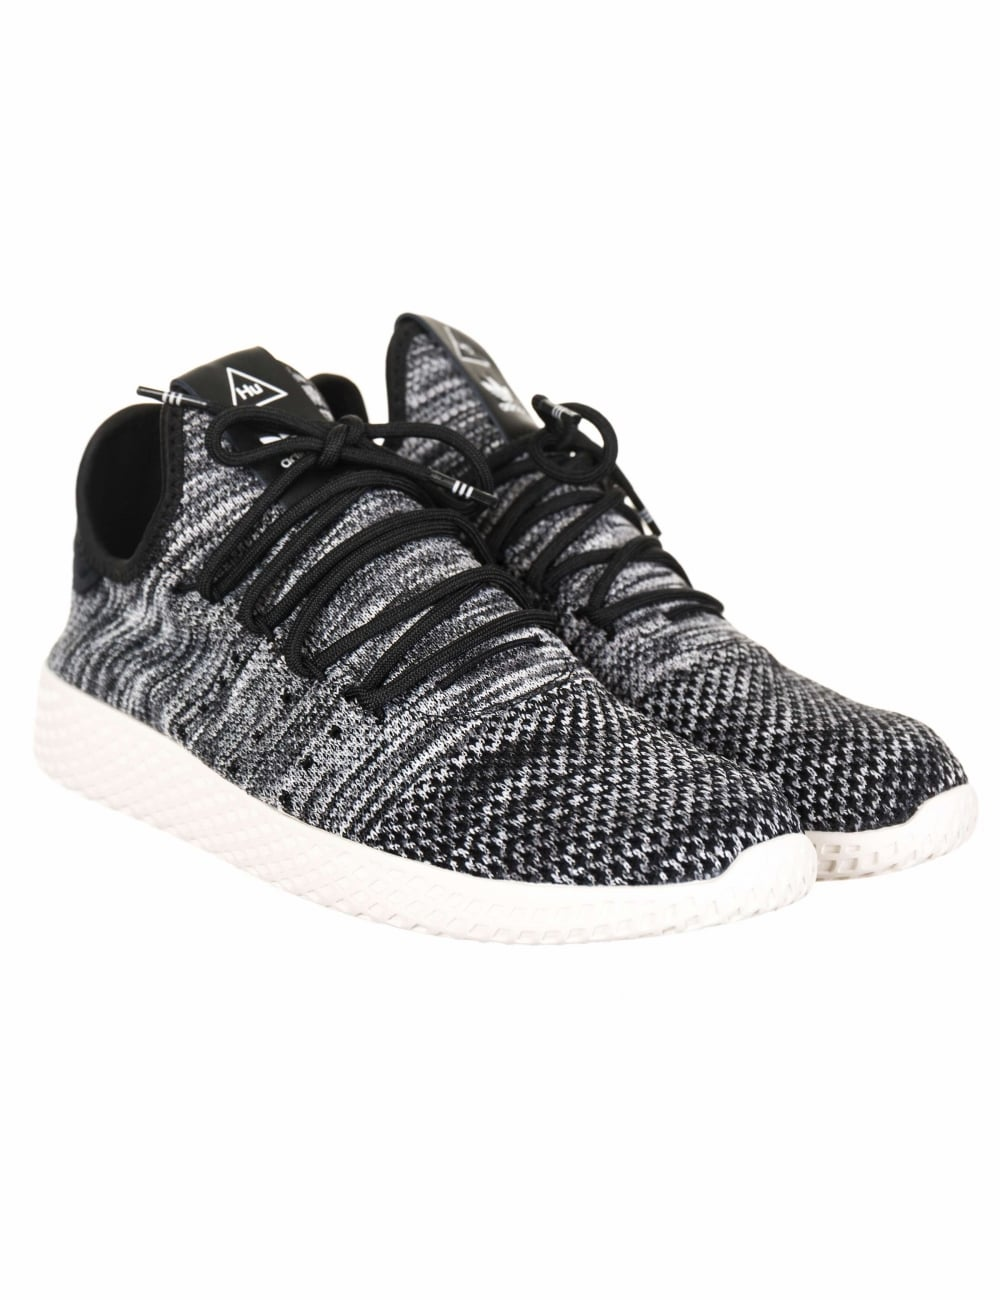 8098032a4 Adidas Originals x Pharrell Williams Tennis HU PK Trainers - Chalk ...